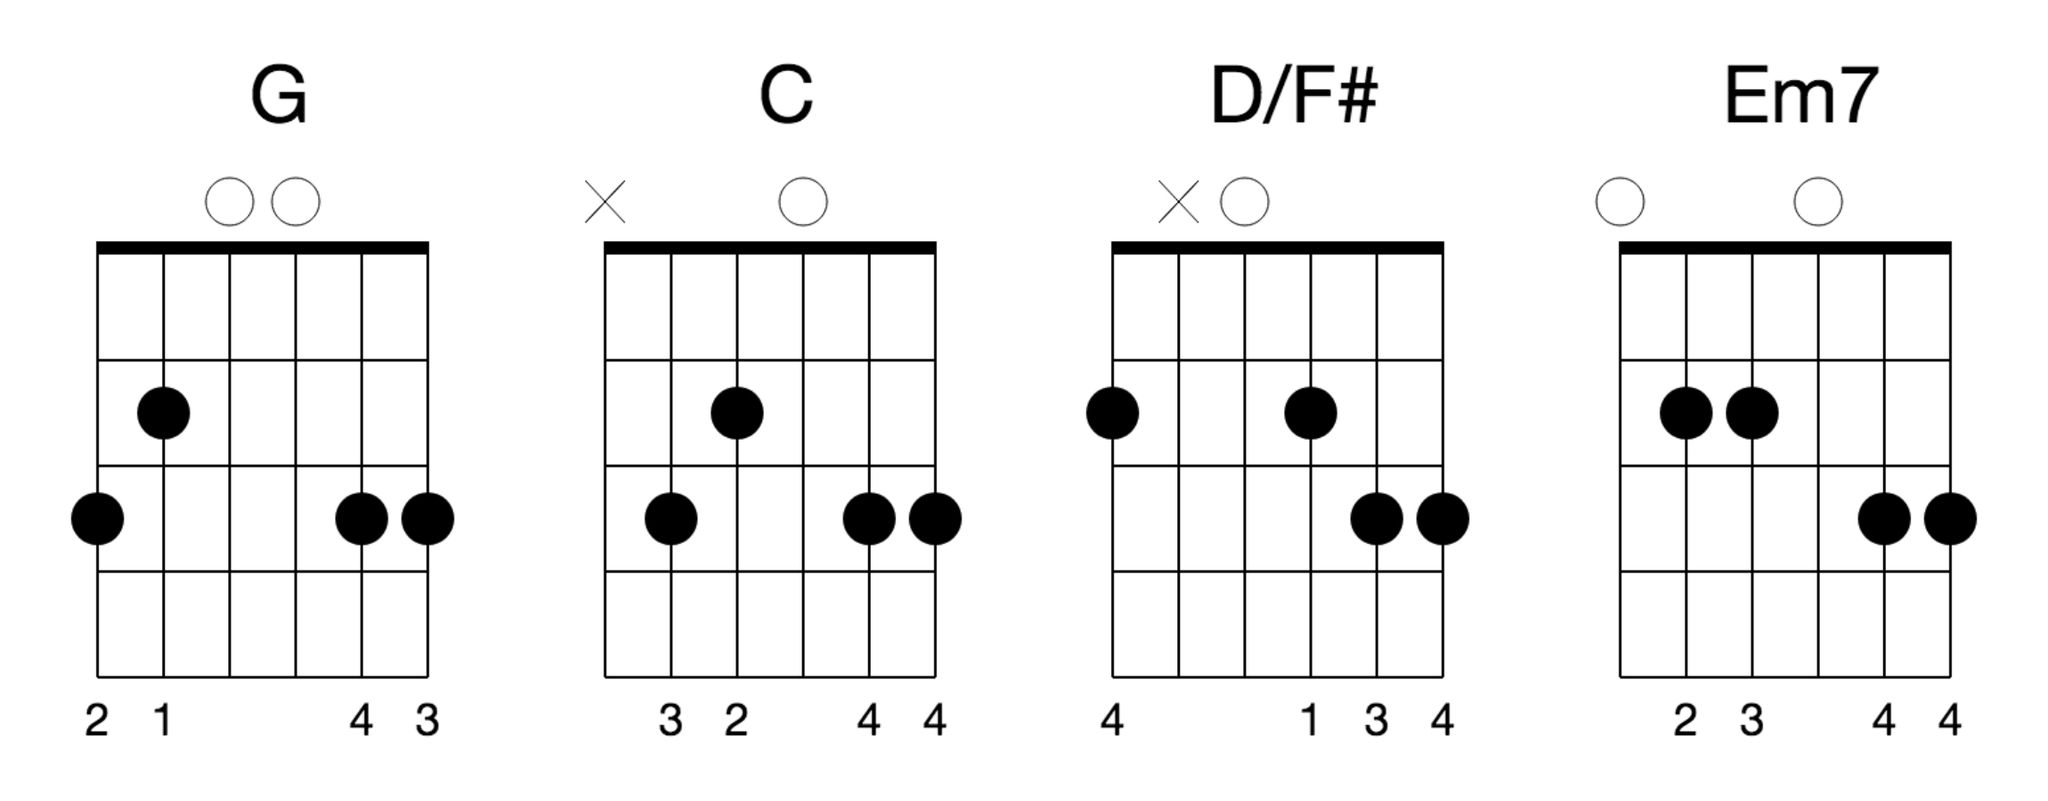 4 Hymns With 4 Chords